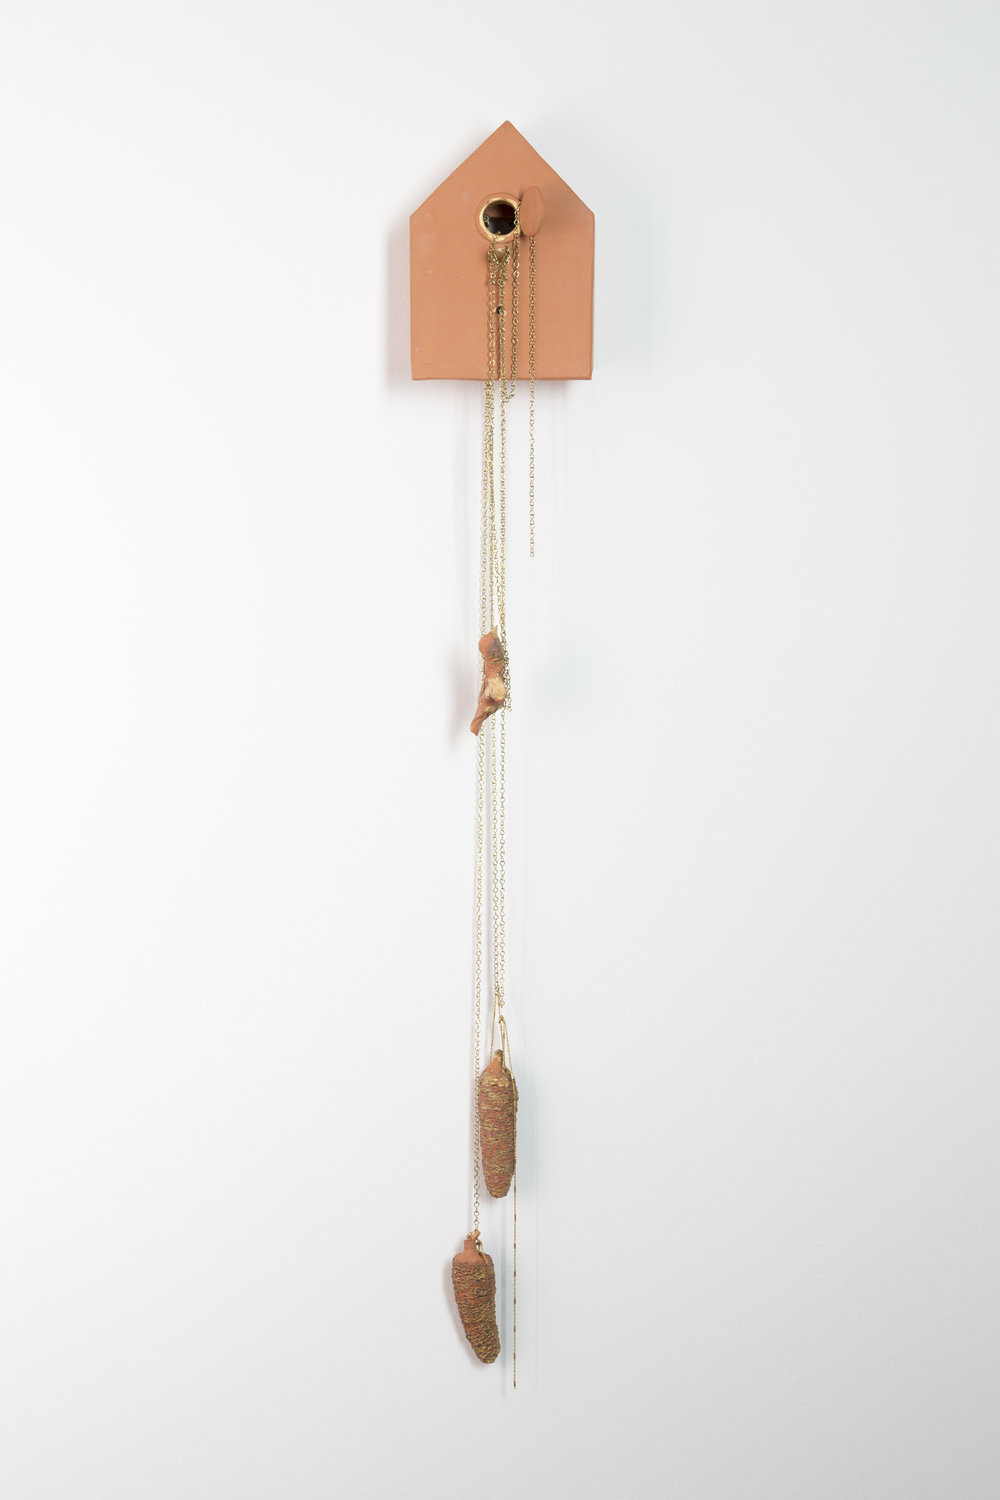 Freitod , 2014  clay, gouache and metal  150 × 20 × 14 cm